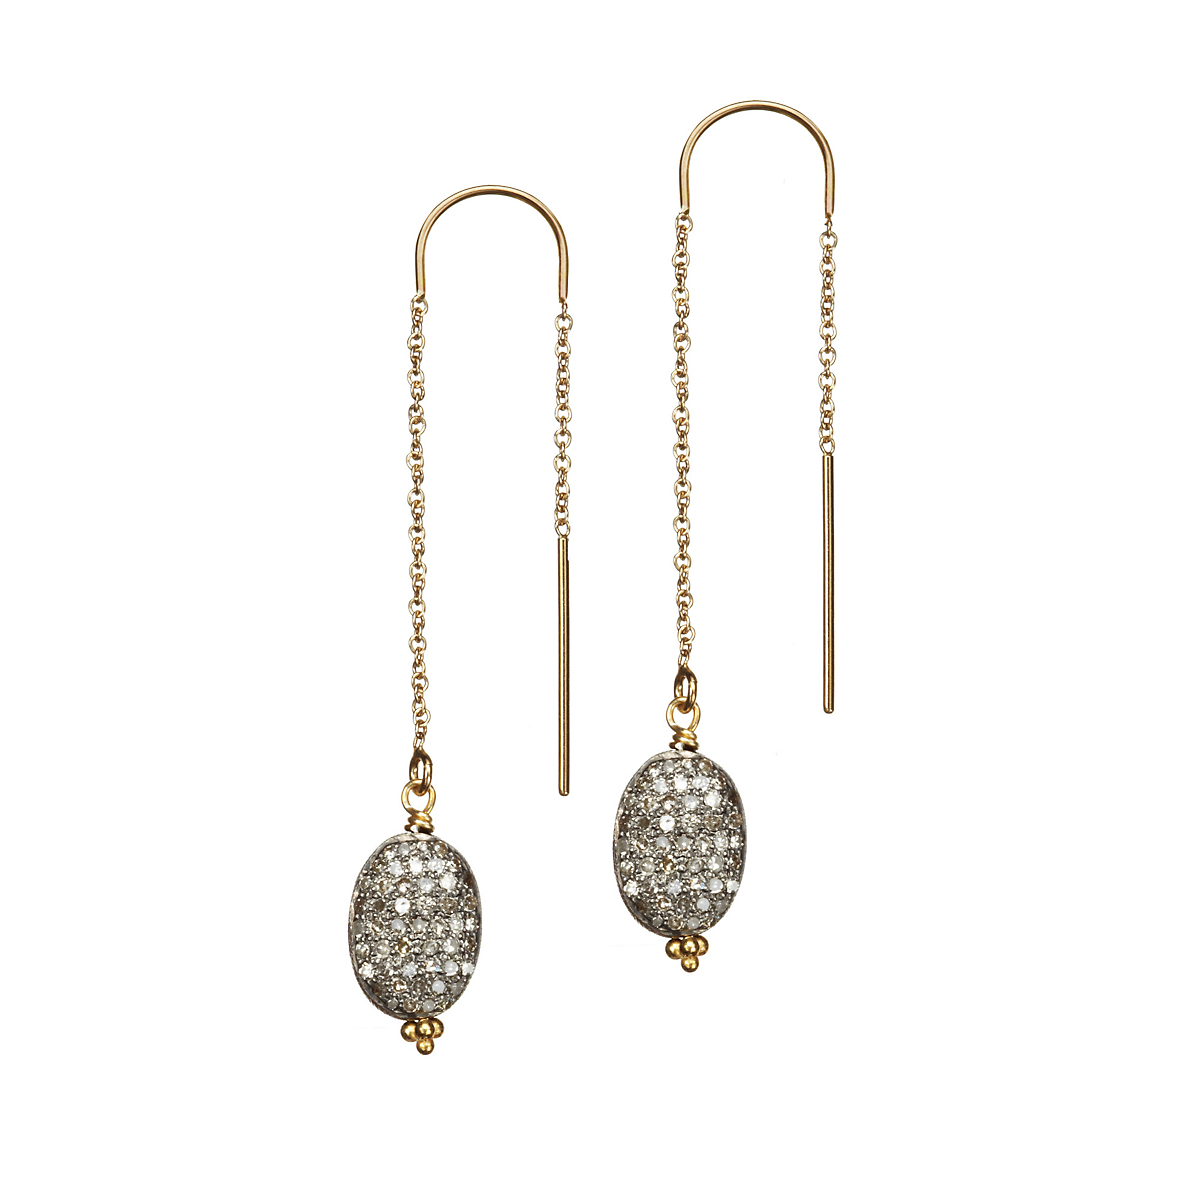 Nikki Baker Lusso Gray Diamond Earrings